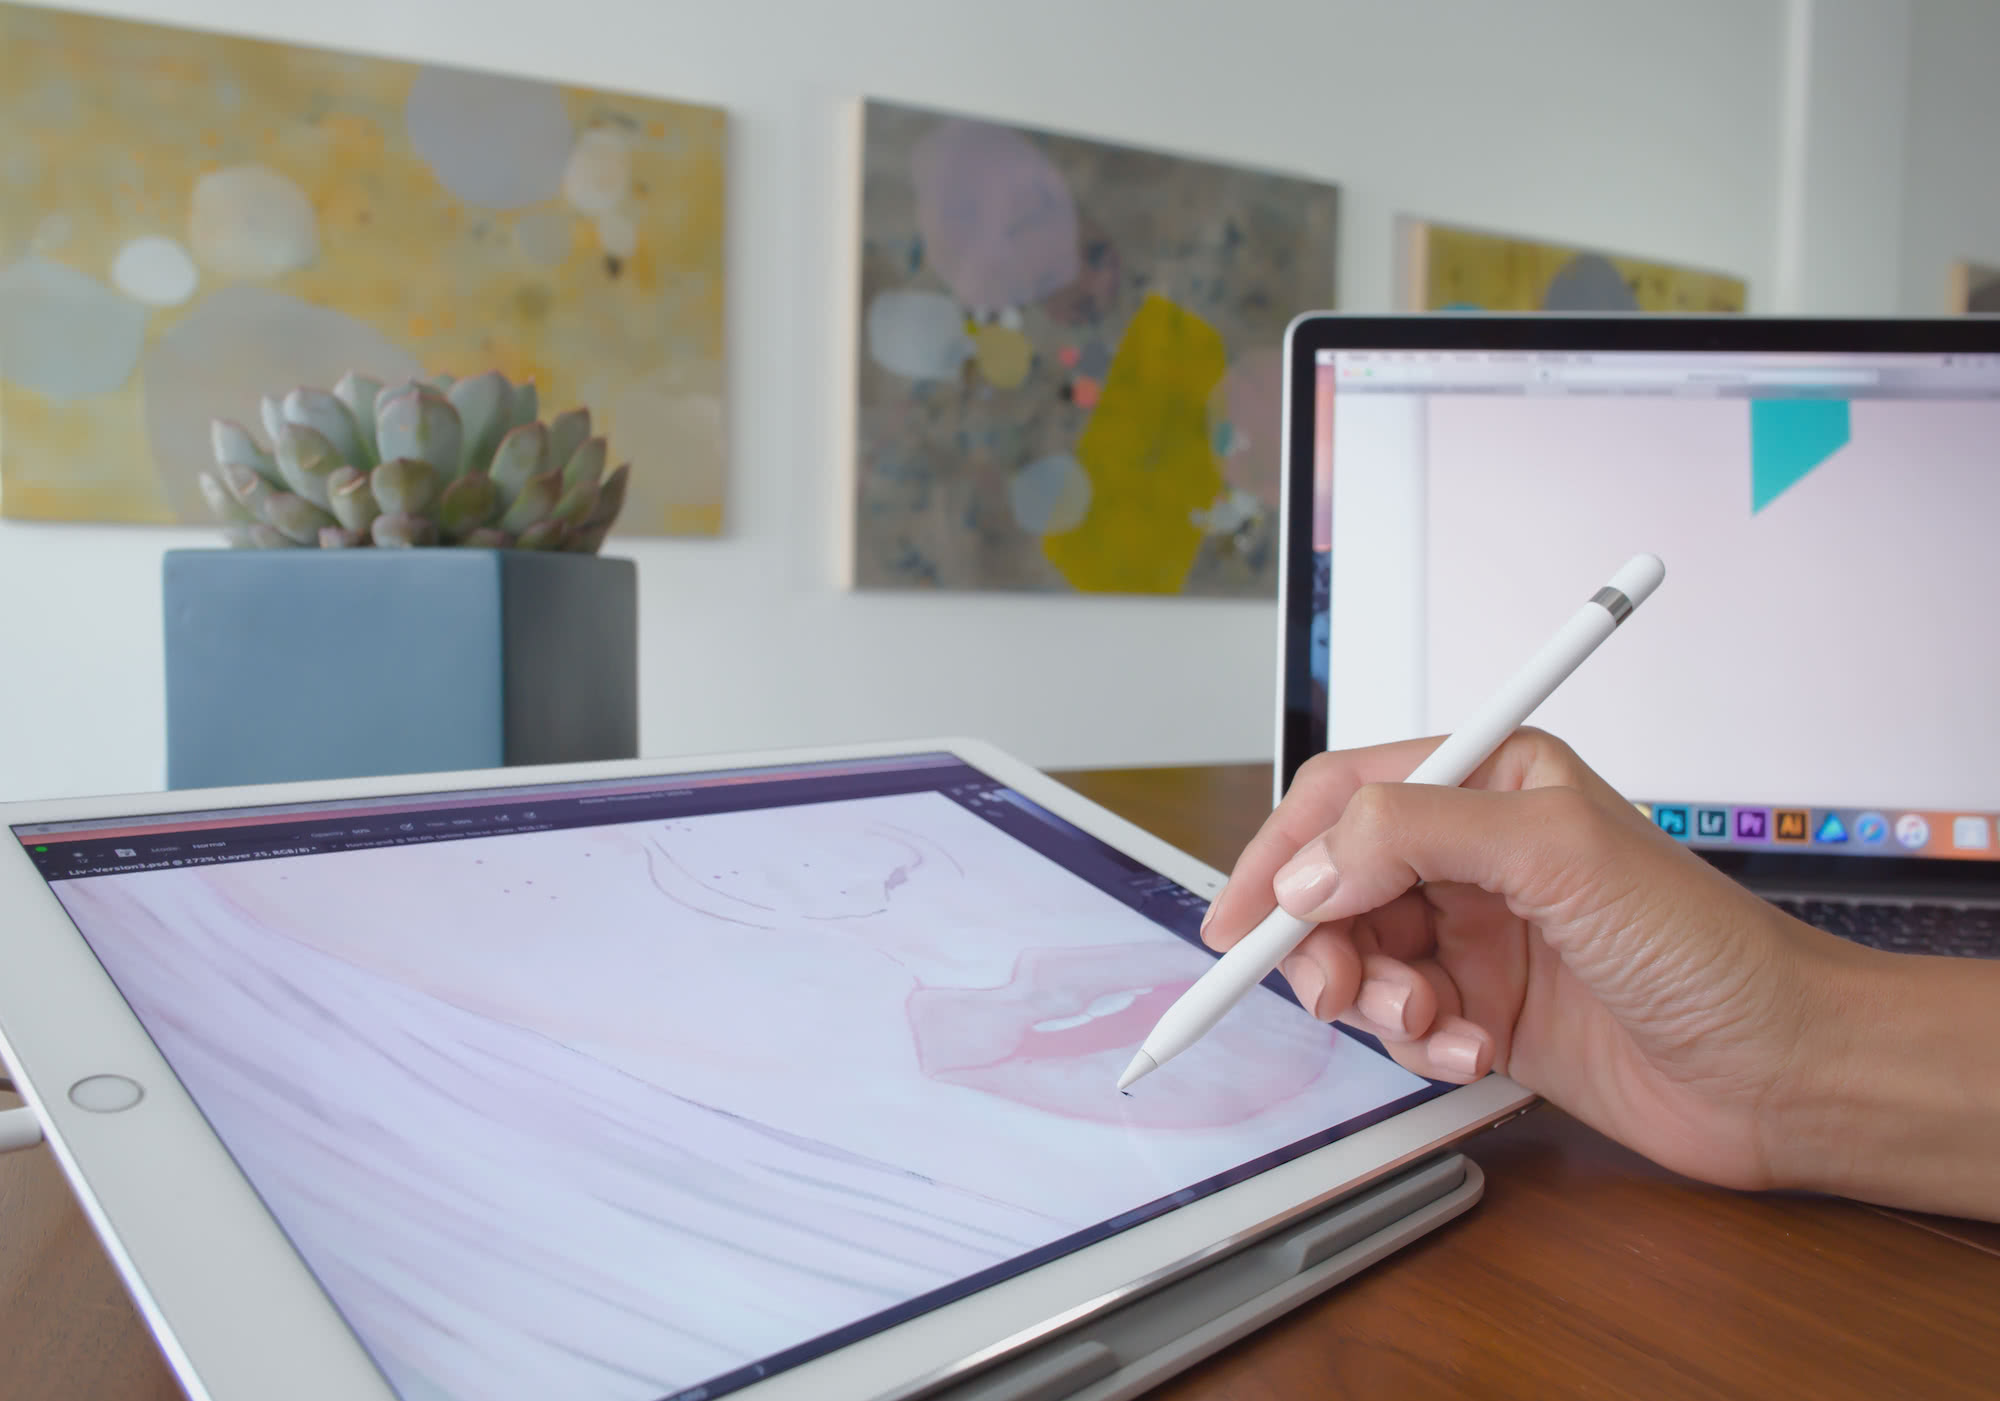 Duet Pro As A Drawing Tablet For IPad And Apple Pencil